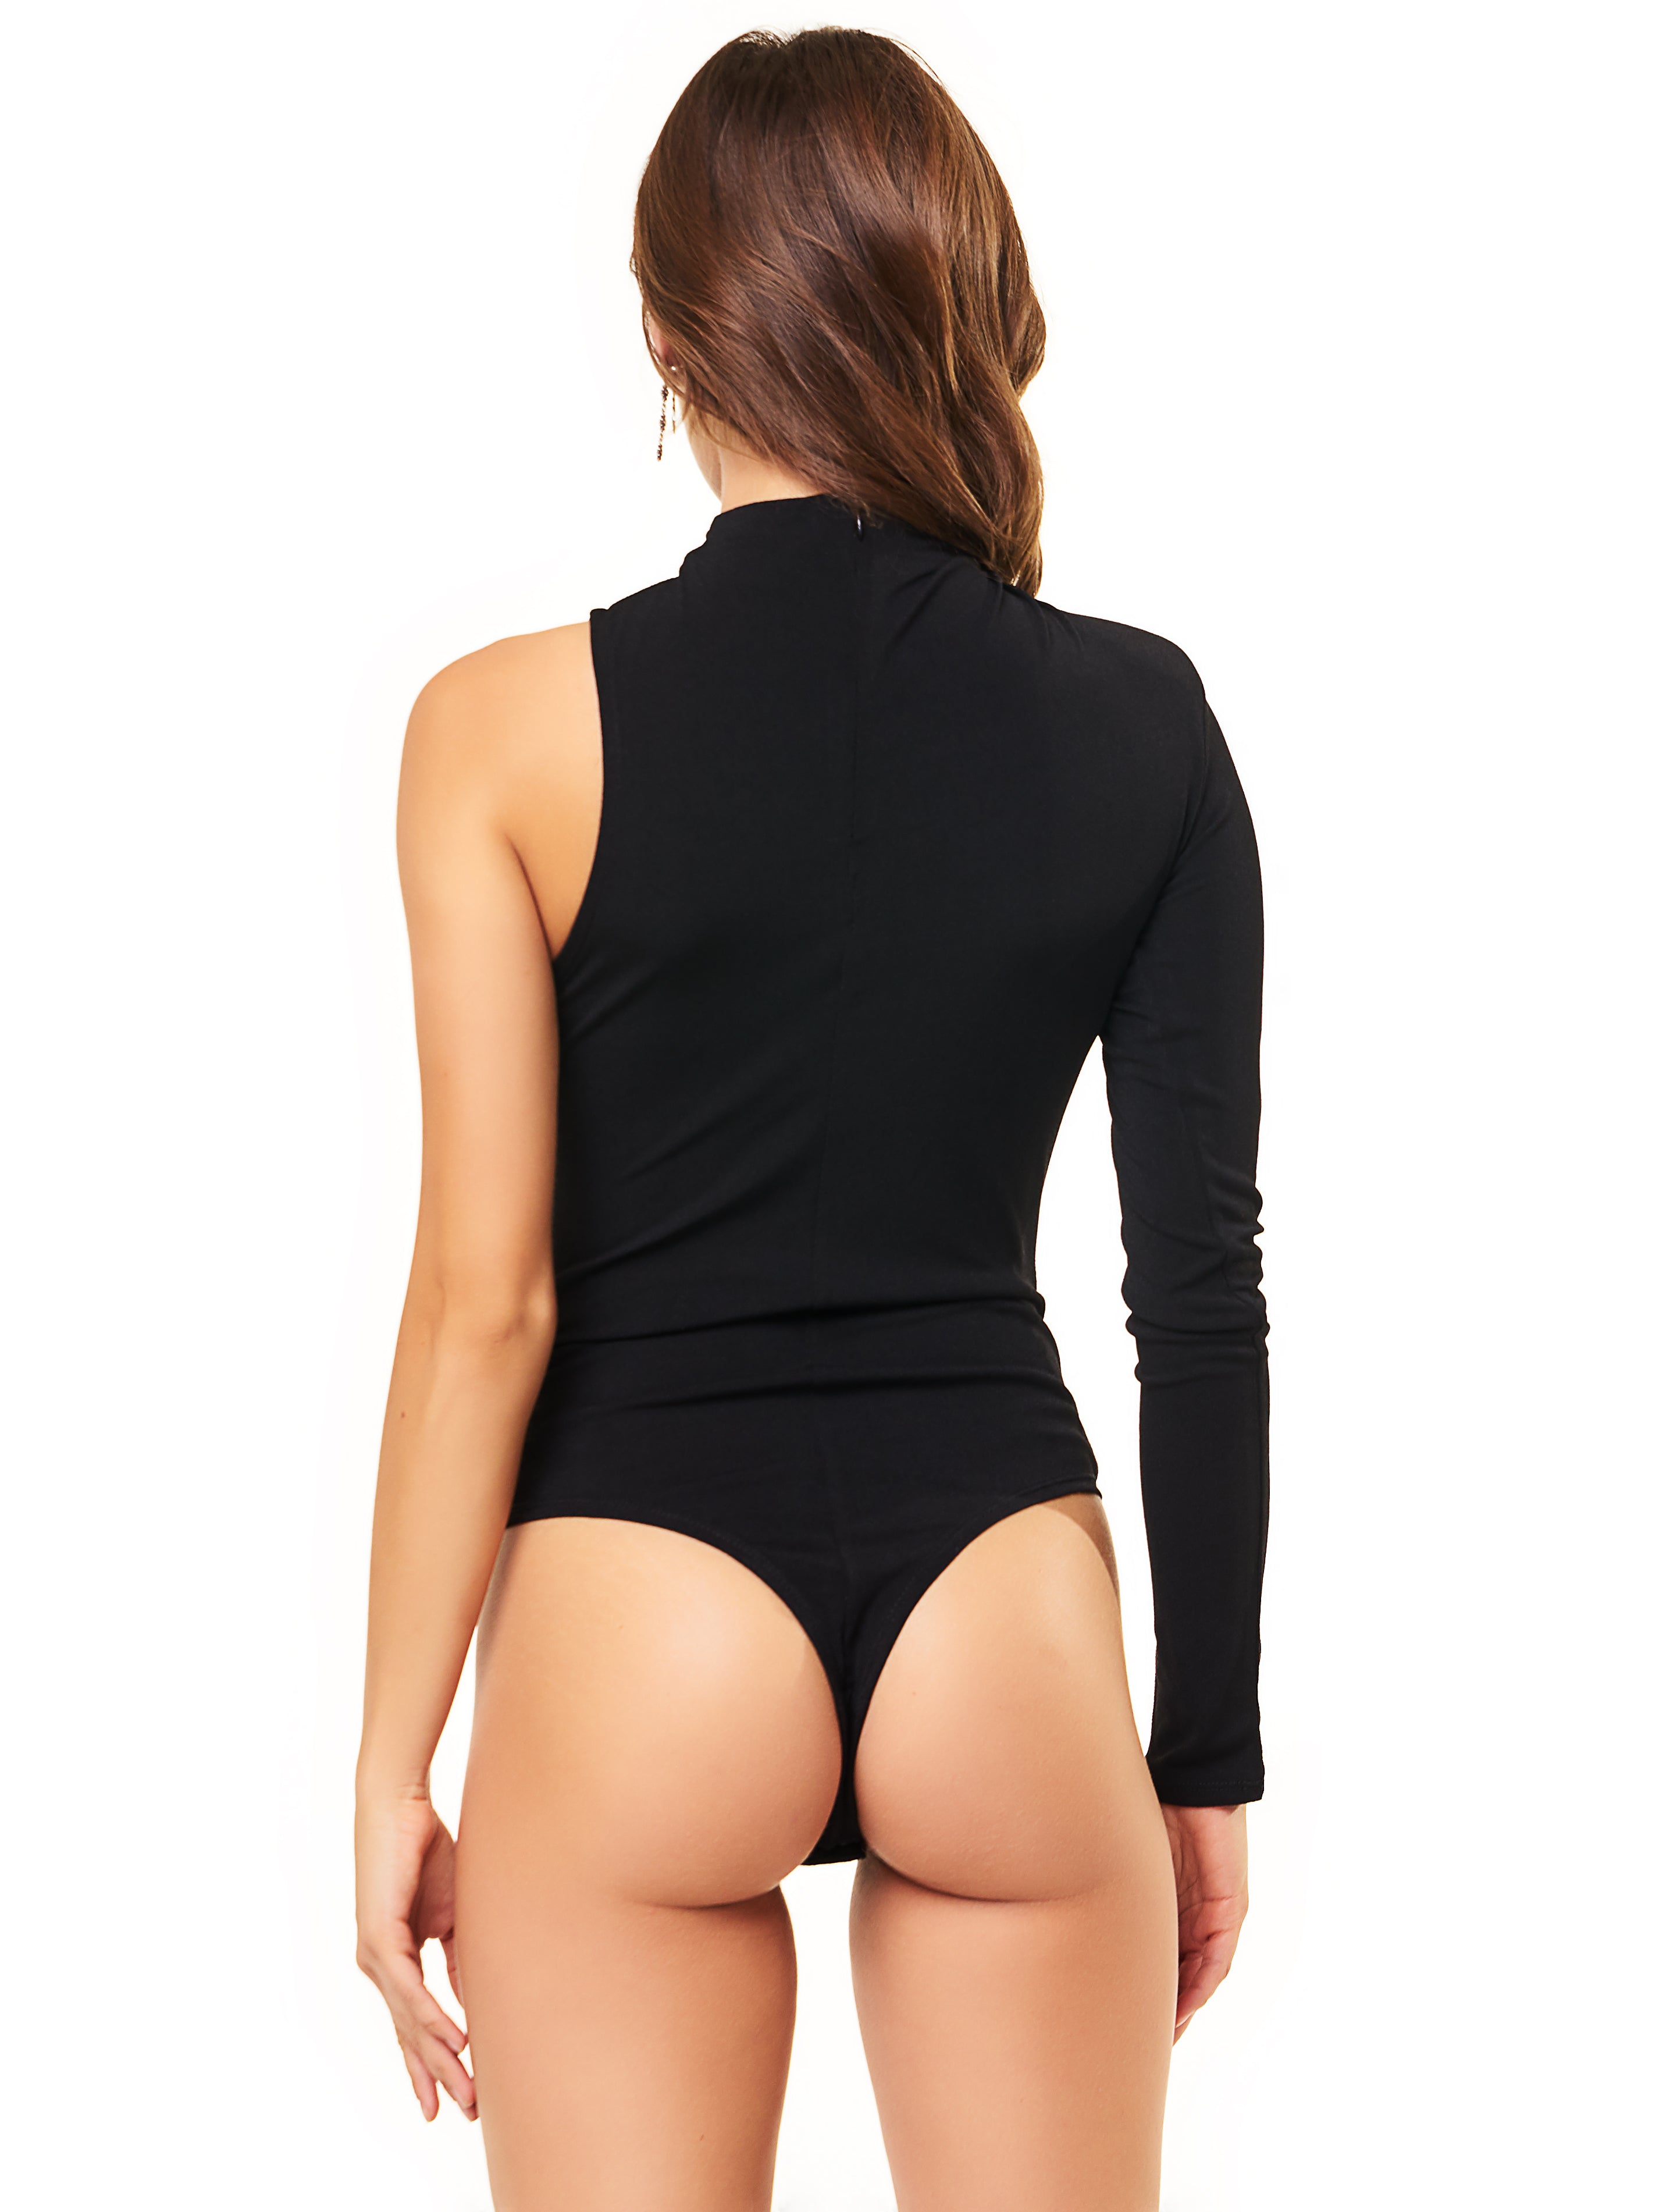 Elliot Bodysuit